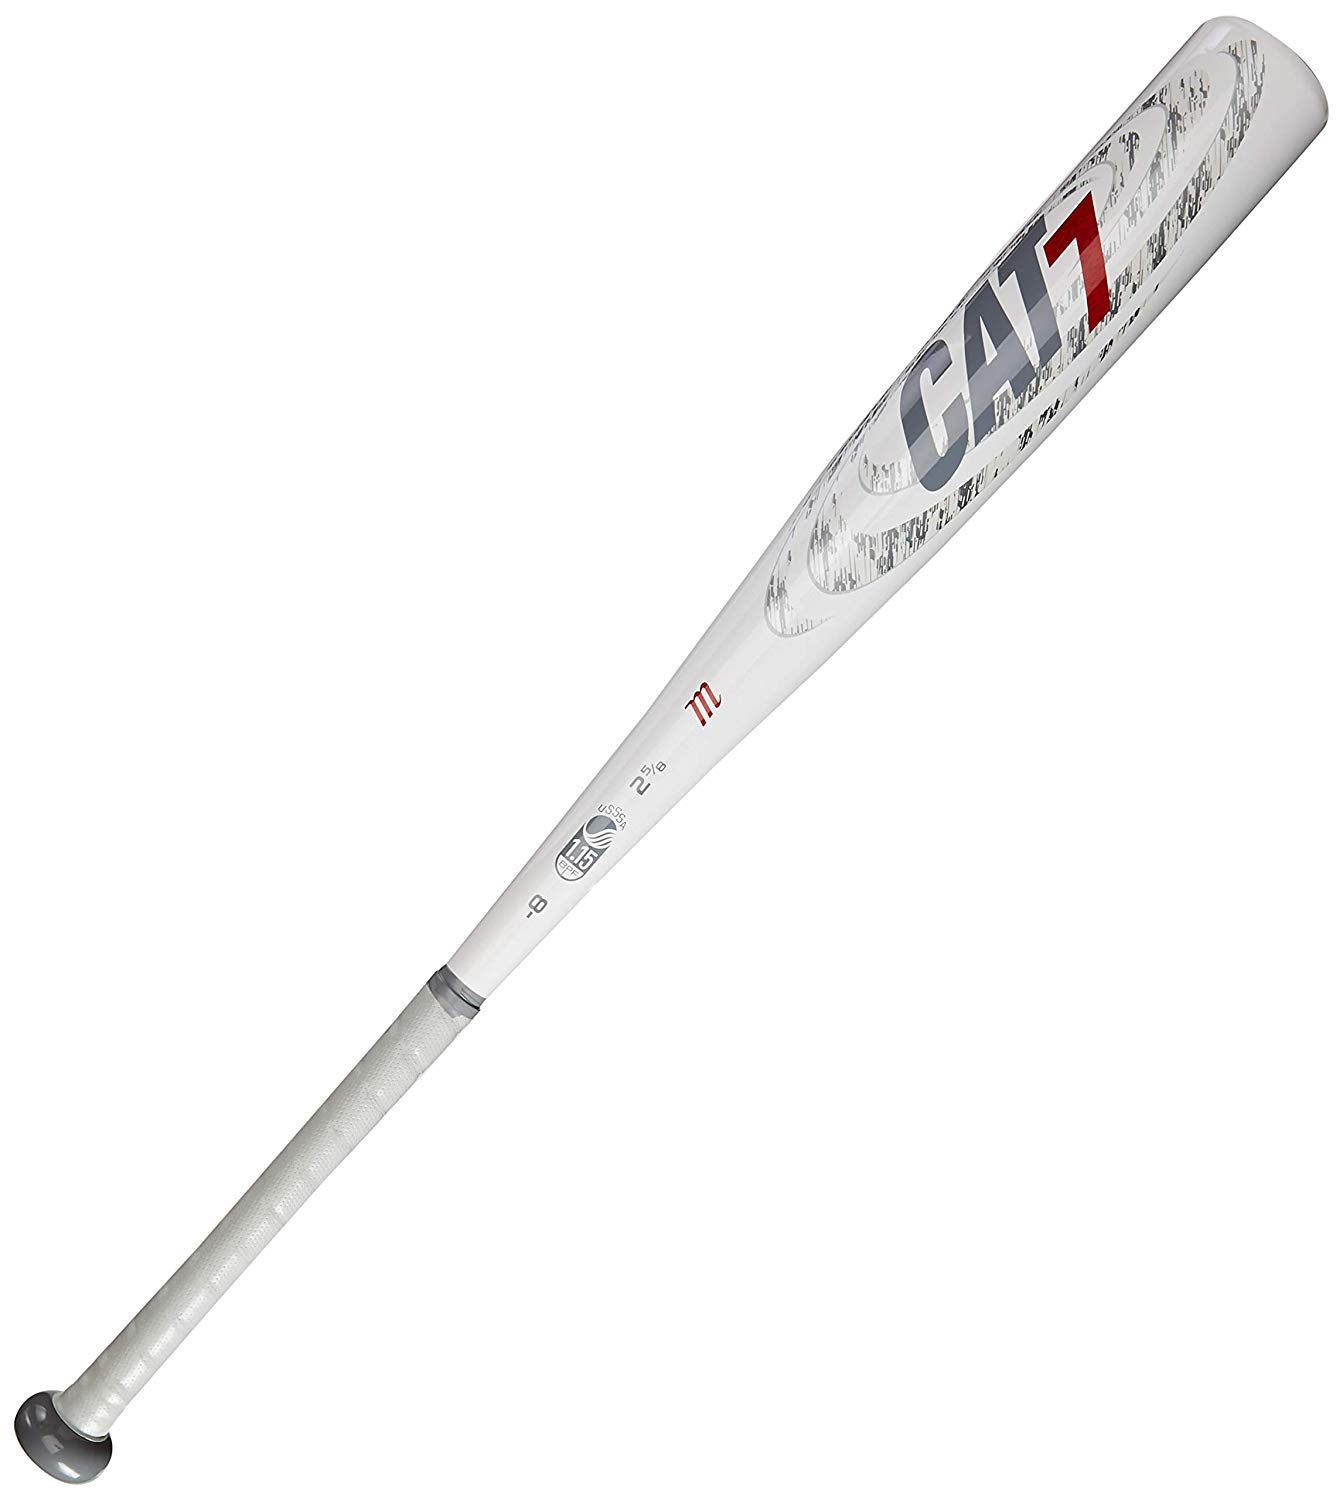 marucci-cat7-8-baseball-bat-32-inch-24-oz MSBYC78-3224  849817039960 Az4x alloy construction provides increased strength and a higher response rate.